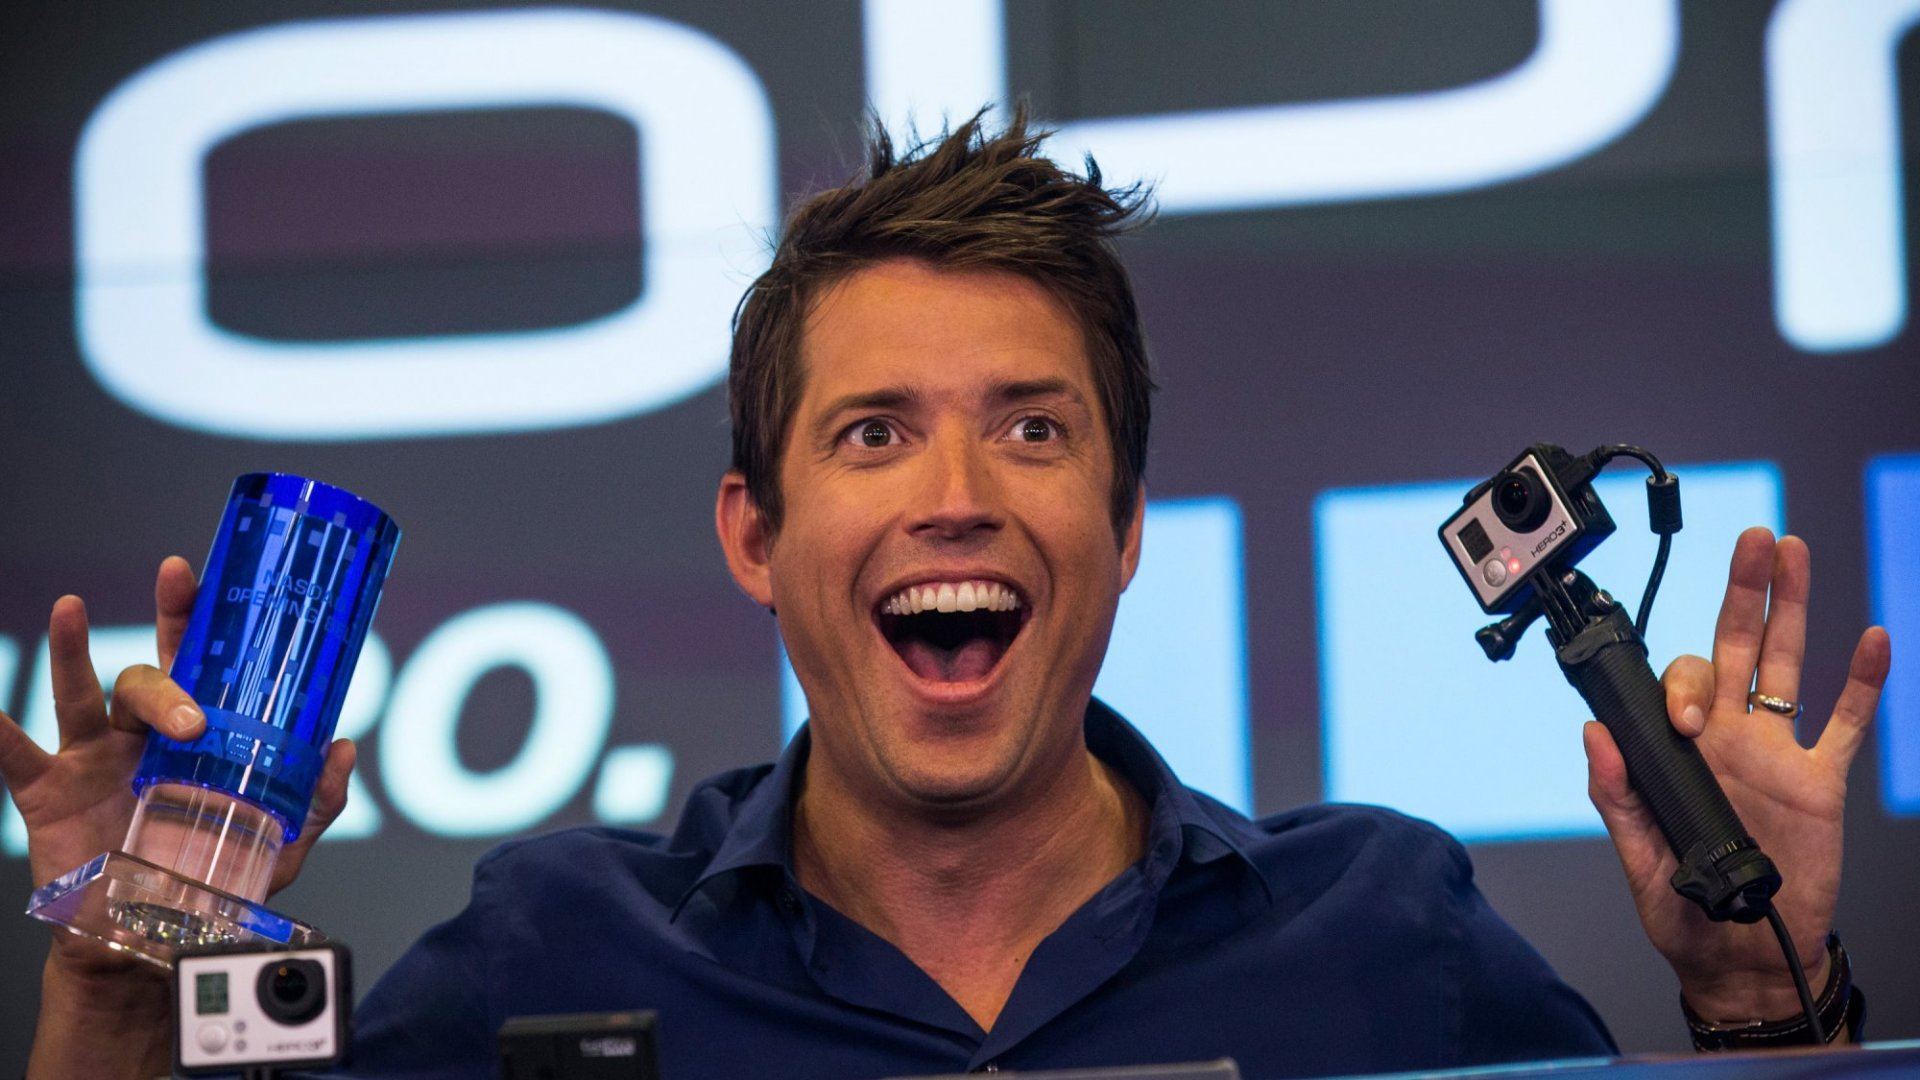 GoPro Reports $14.7 Million Profit in Q3 Results